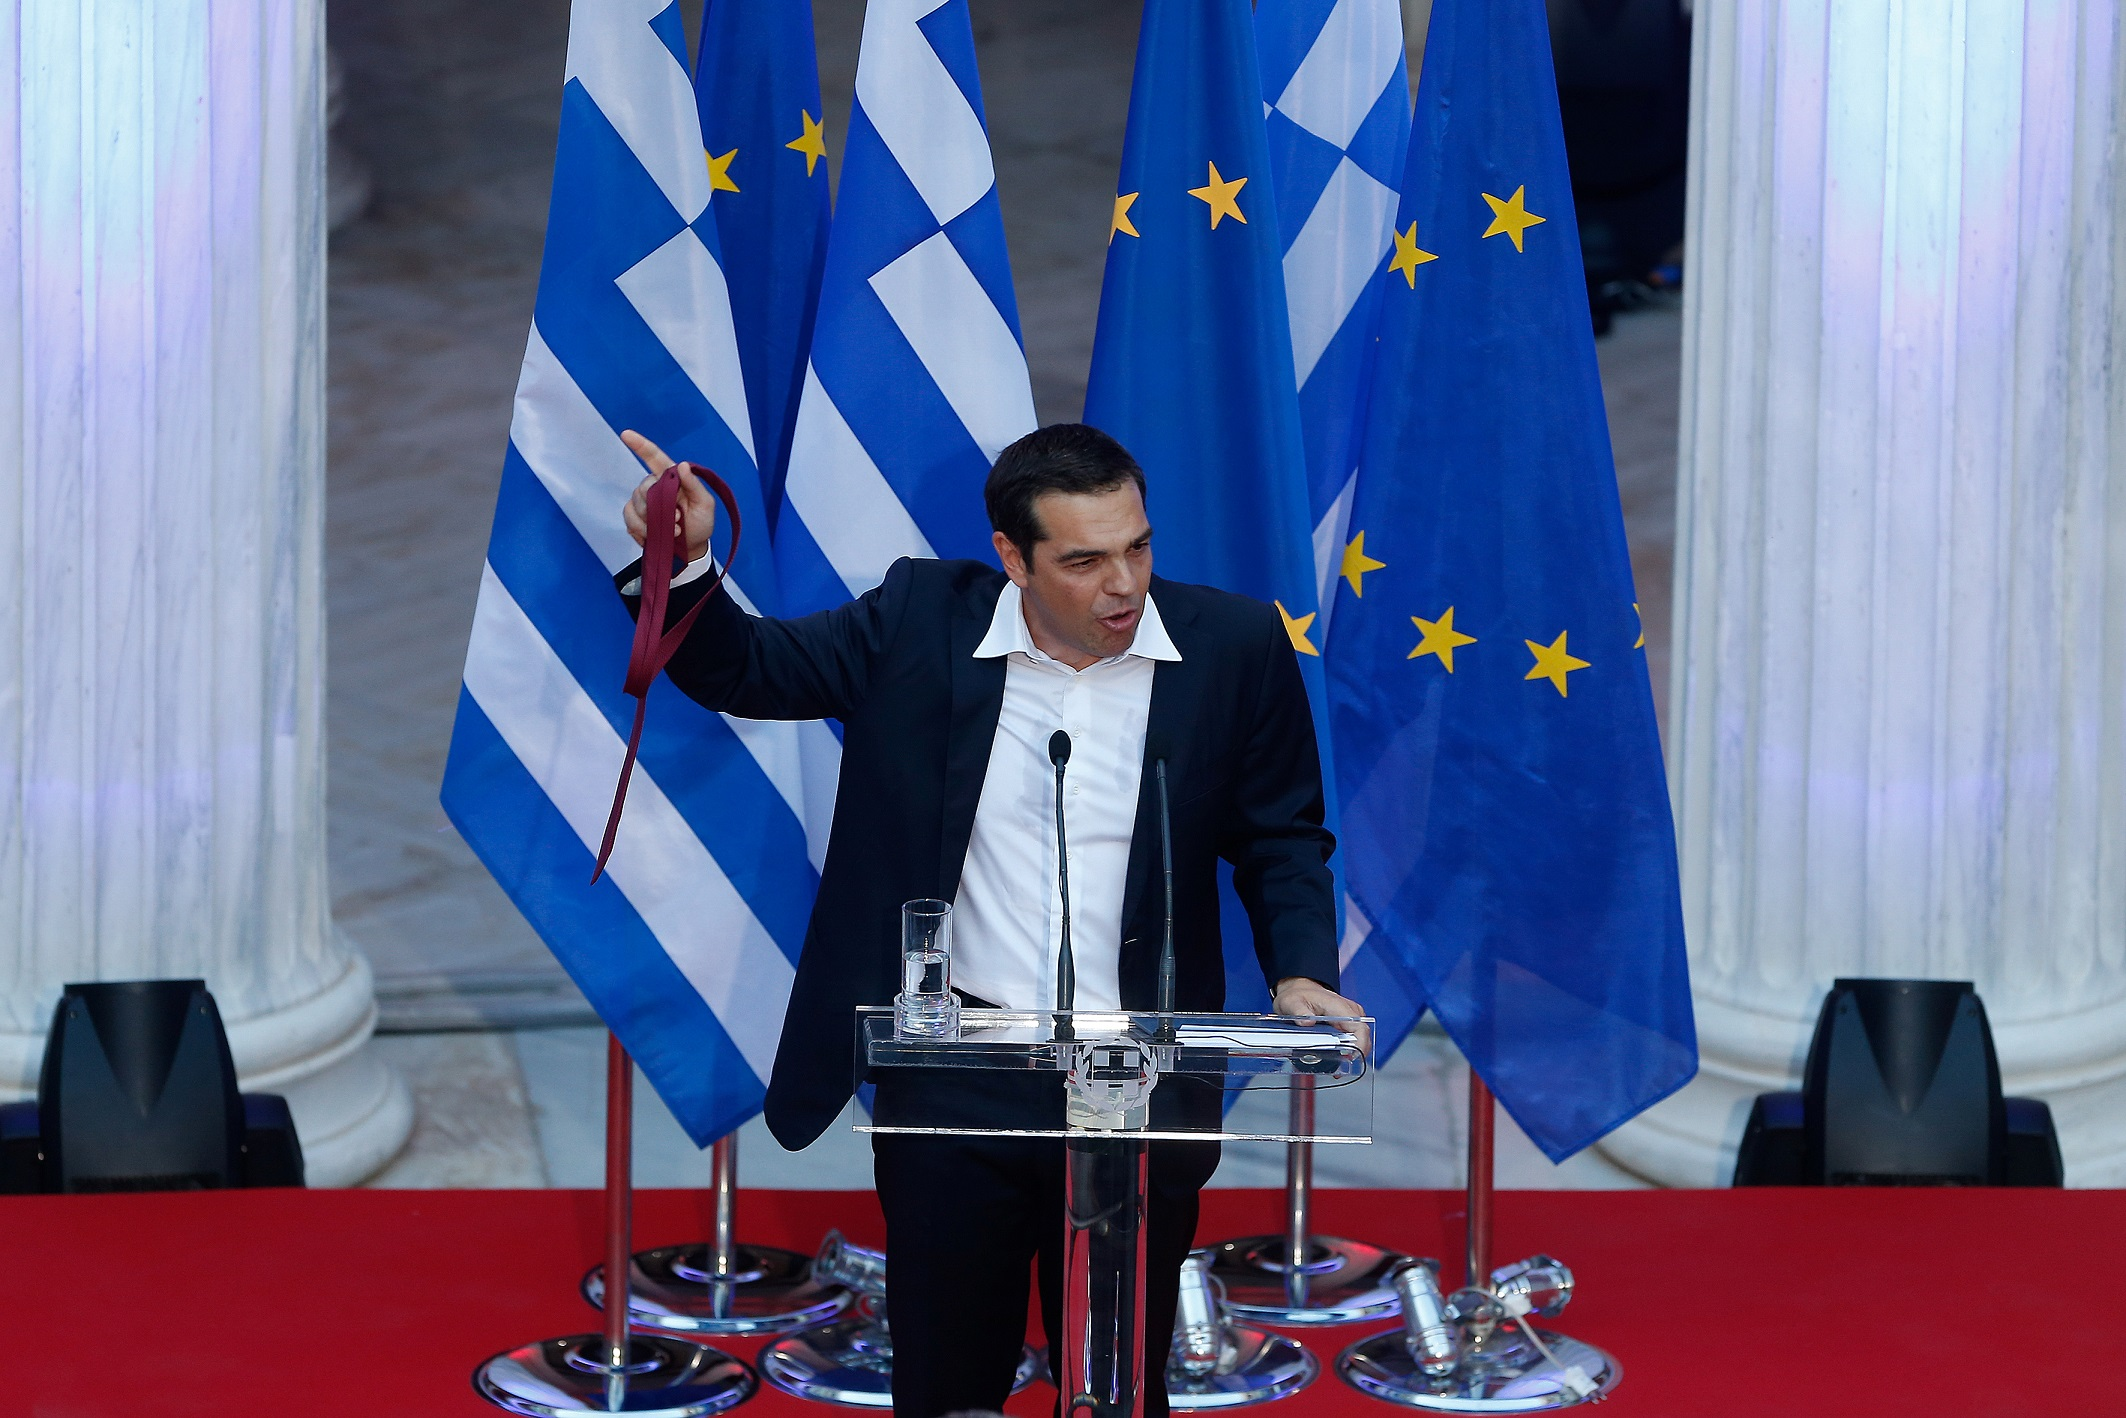 Greek Prime Minister Alexis Tsipras holds his tie as he speaks at the parliamentary group of Syriza and Independent Greeks in Athens, Greece, June 22, 2018.REUTERS/Costas Baltas - RC1866D1E820